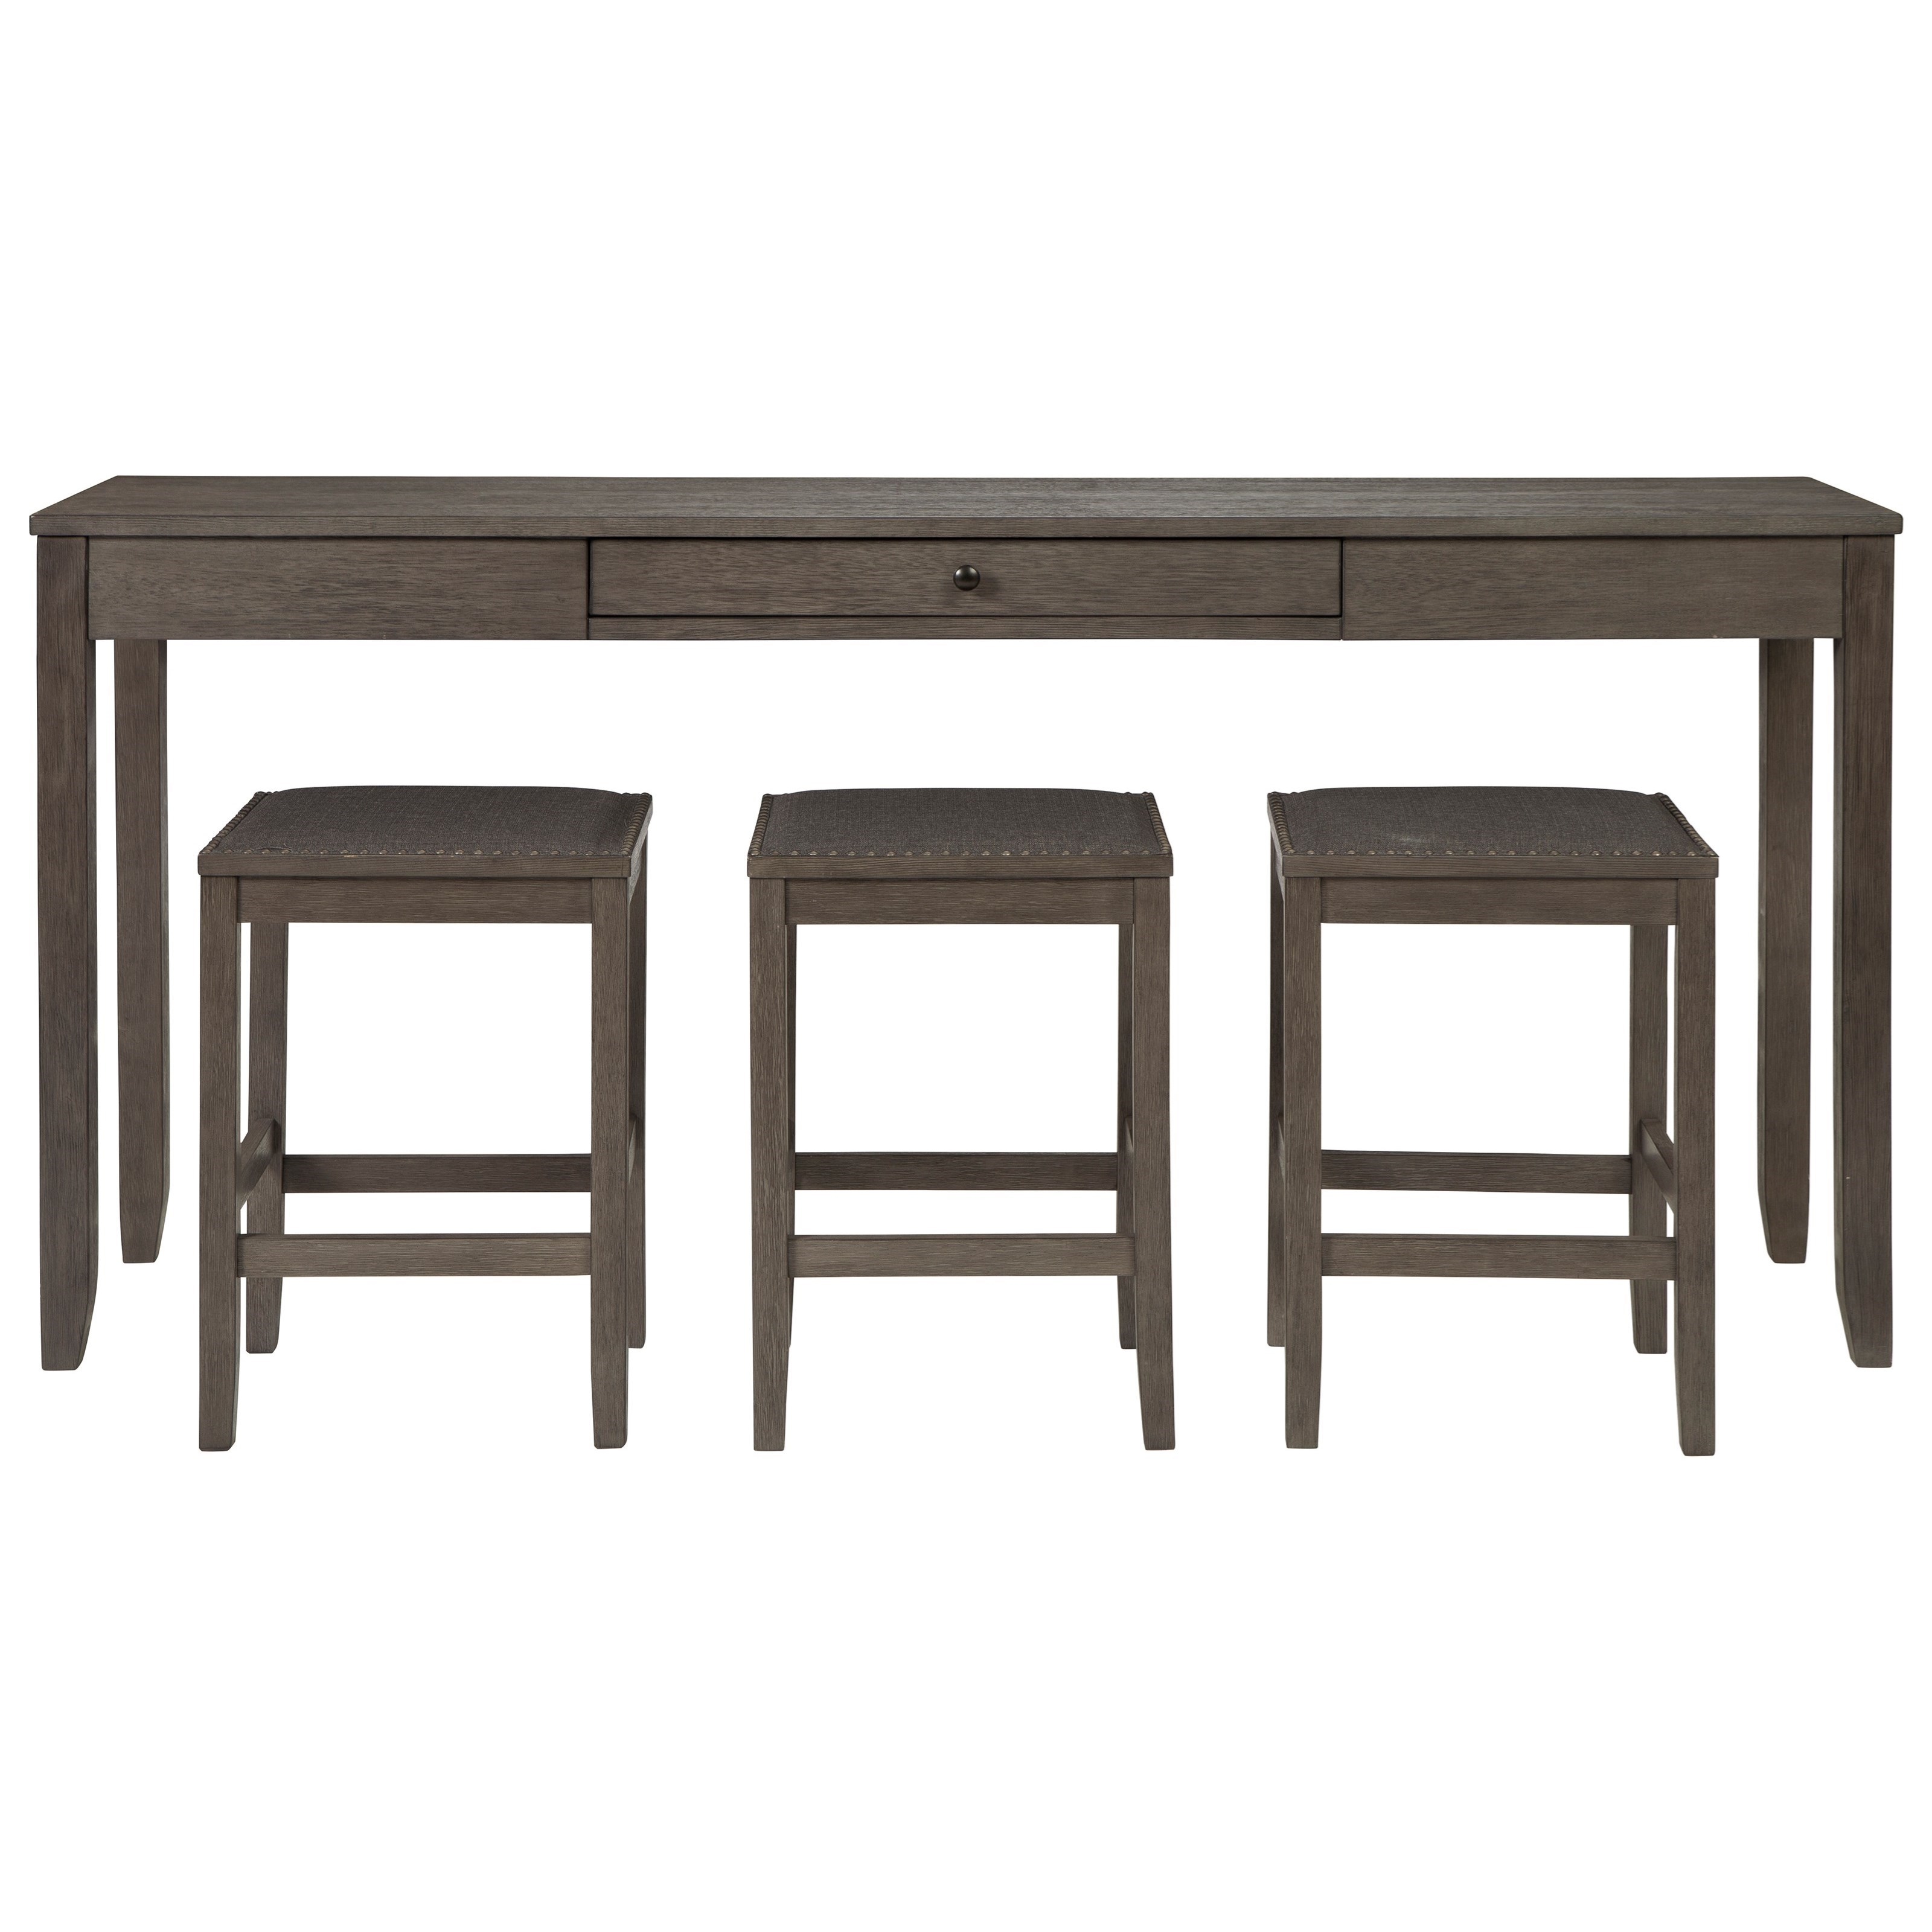 4-Piece Rectangular Counter Table Set